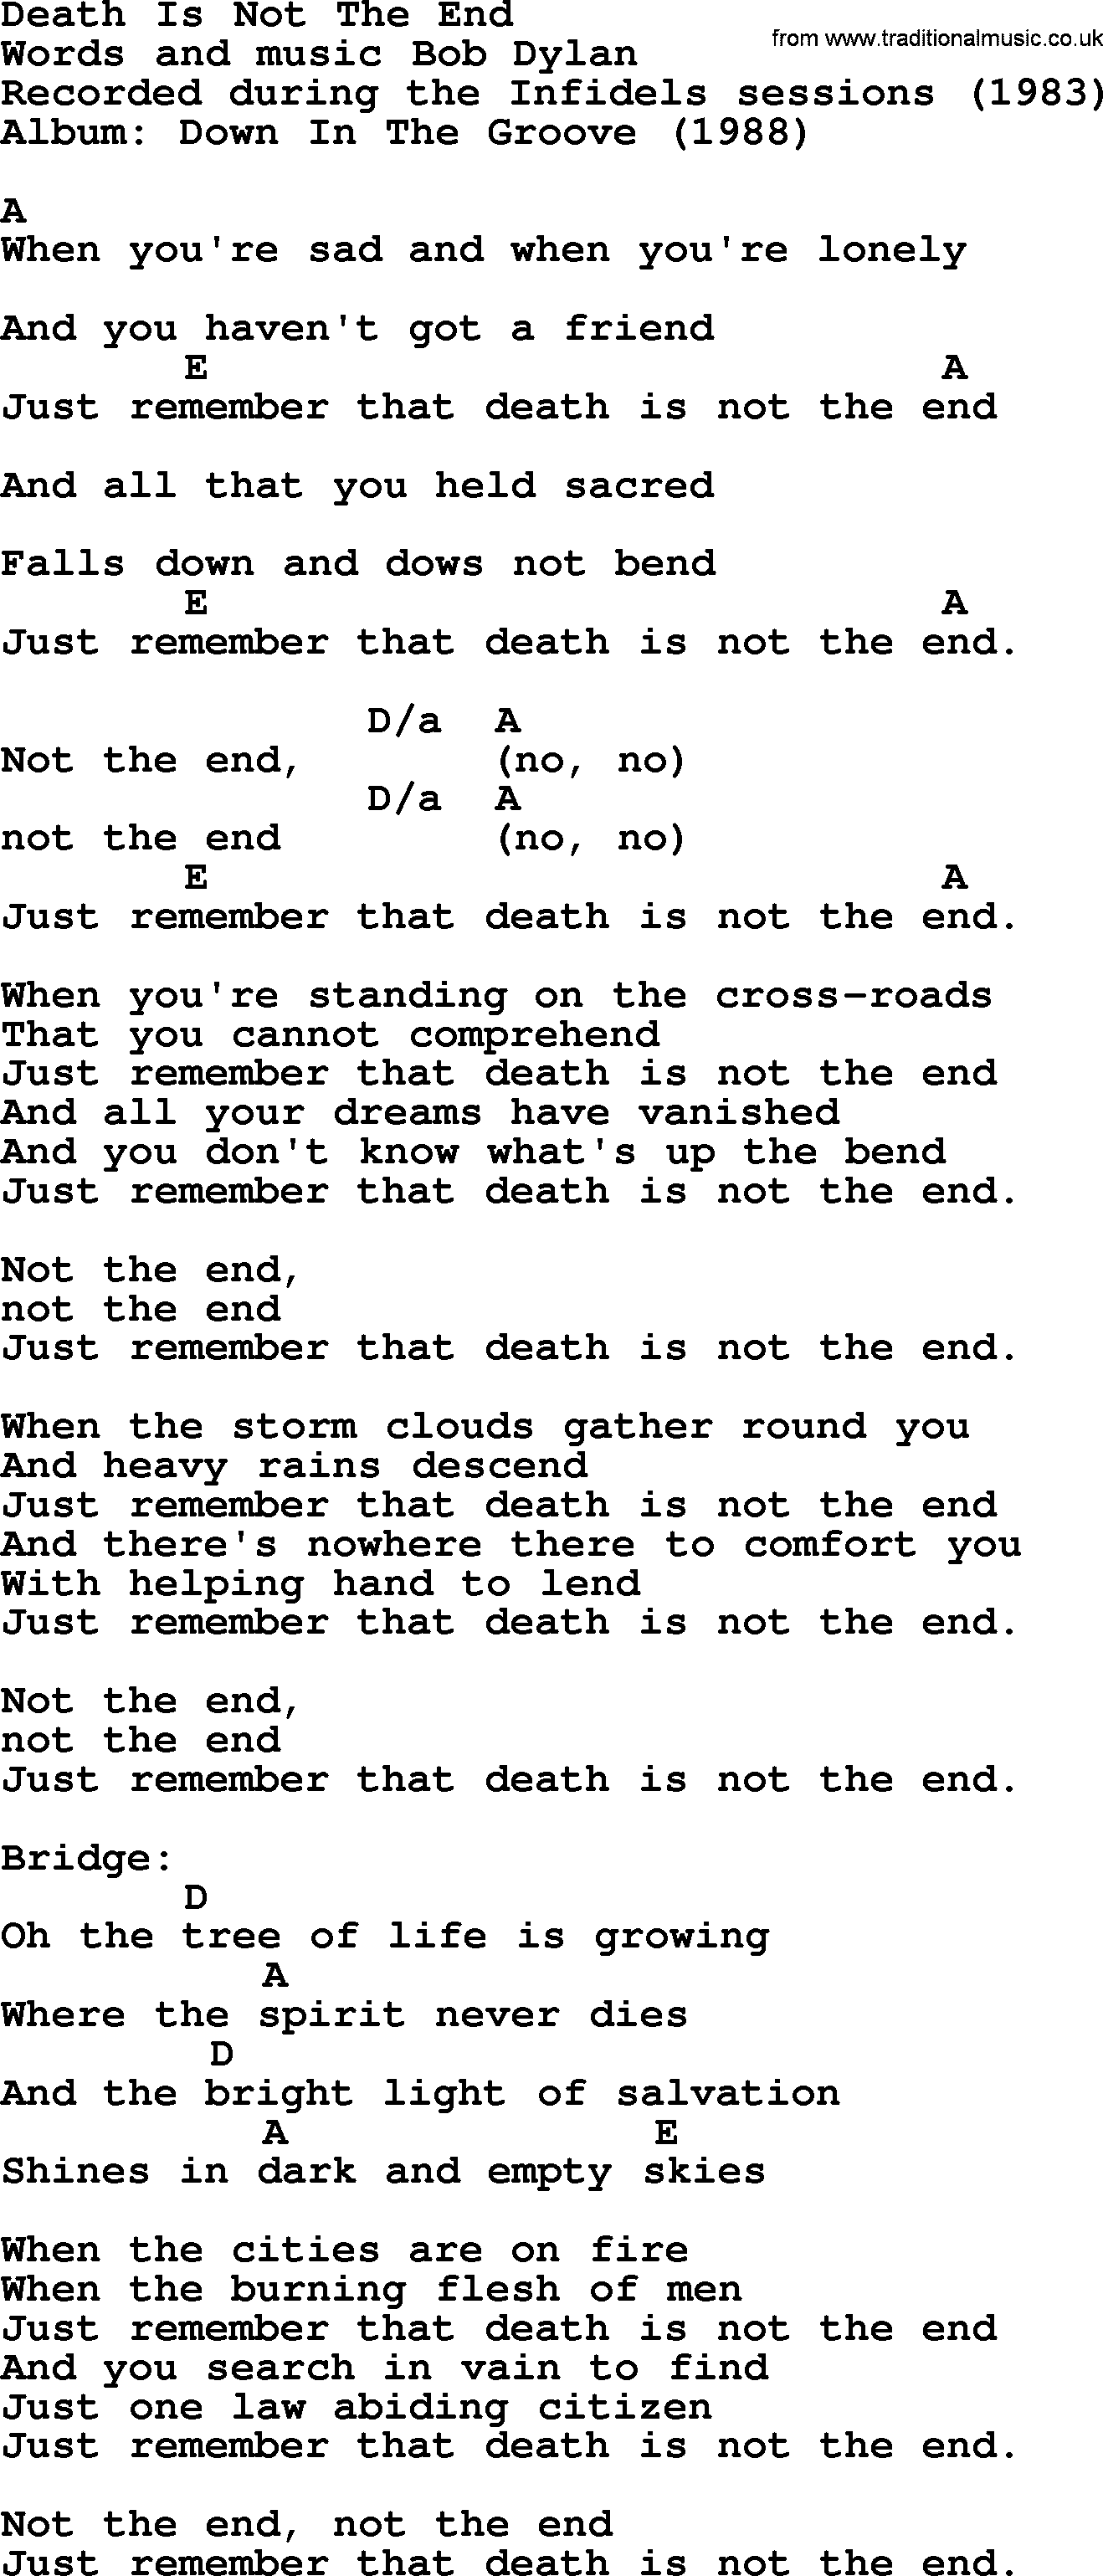 Bob Dylan song - Death Is Not The End, lyrics and chords